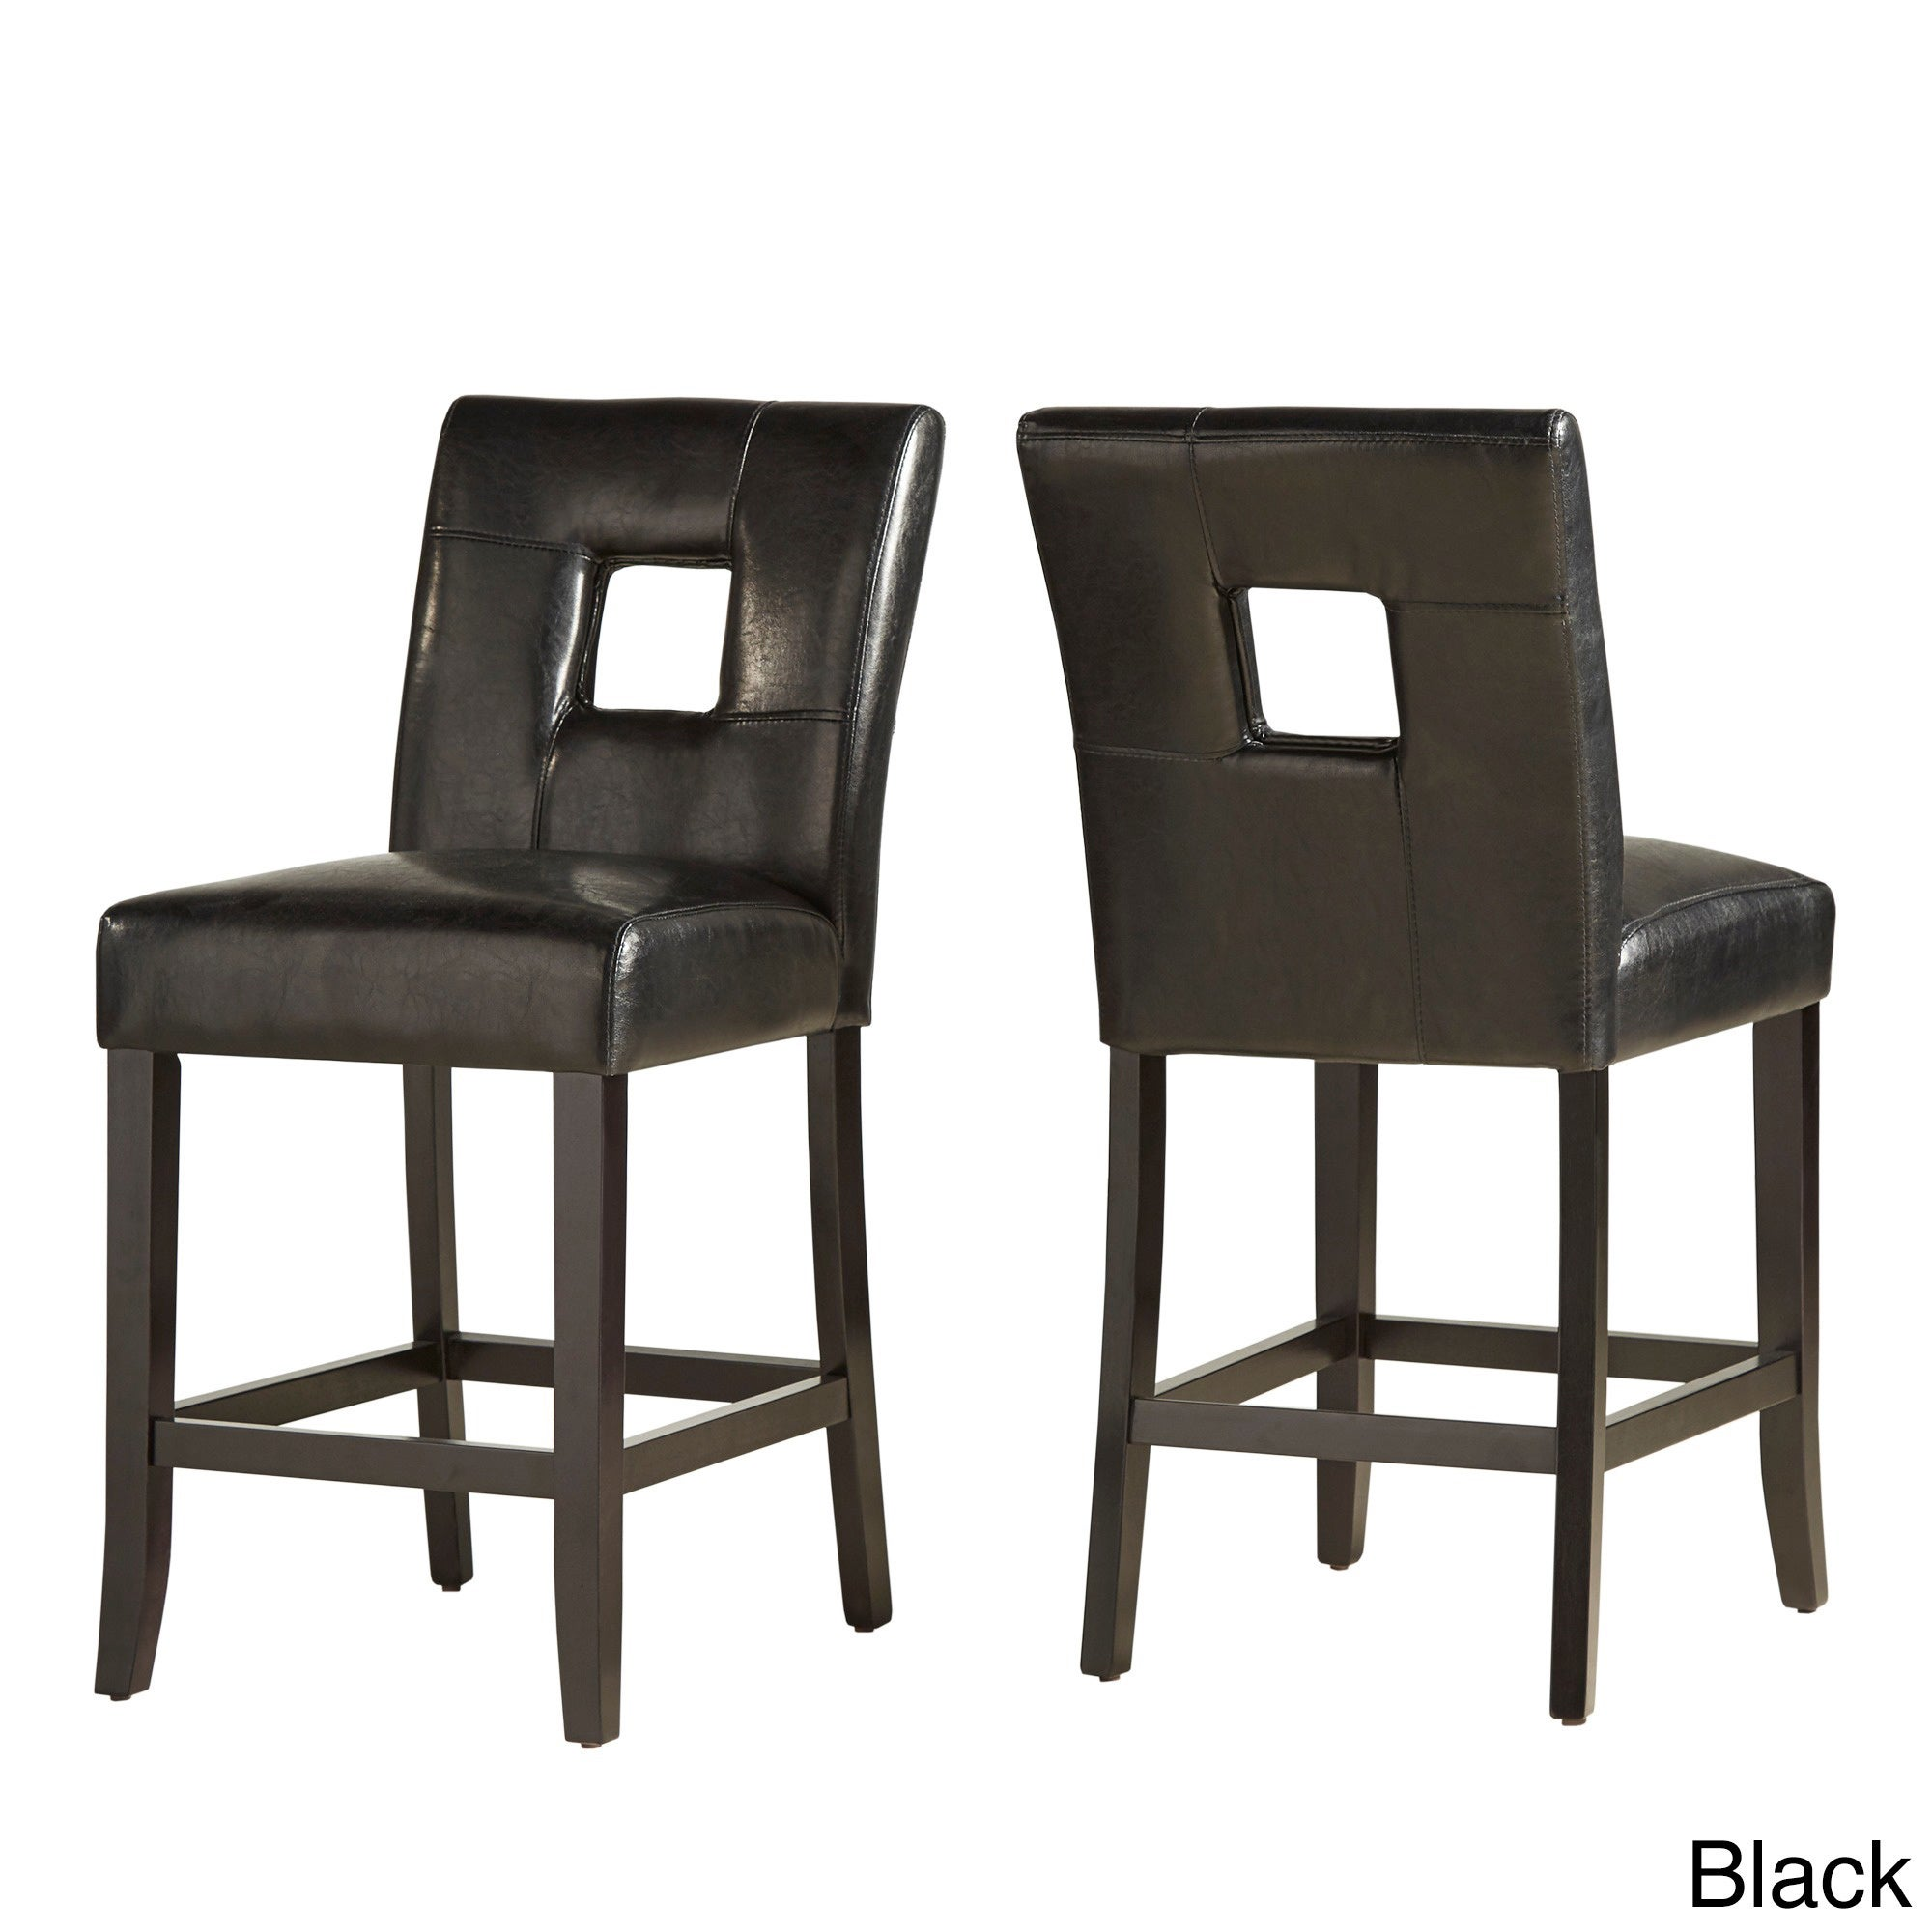 Mendoza Keyhole Counter Height High Back Stool Set Of 2